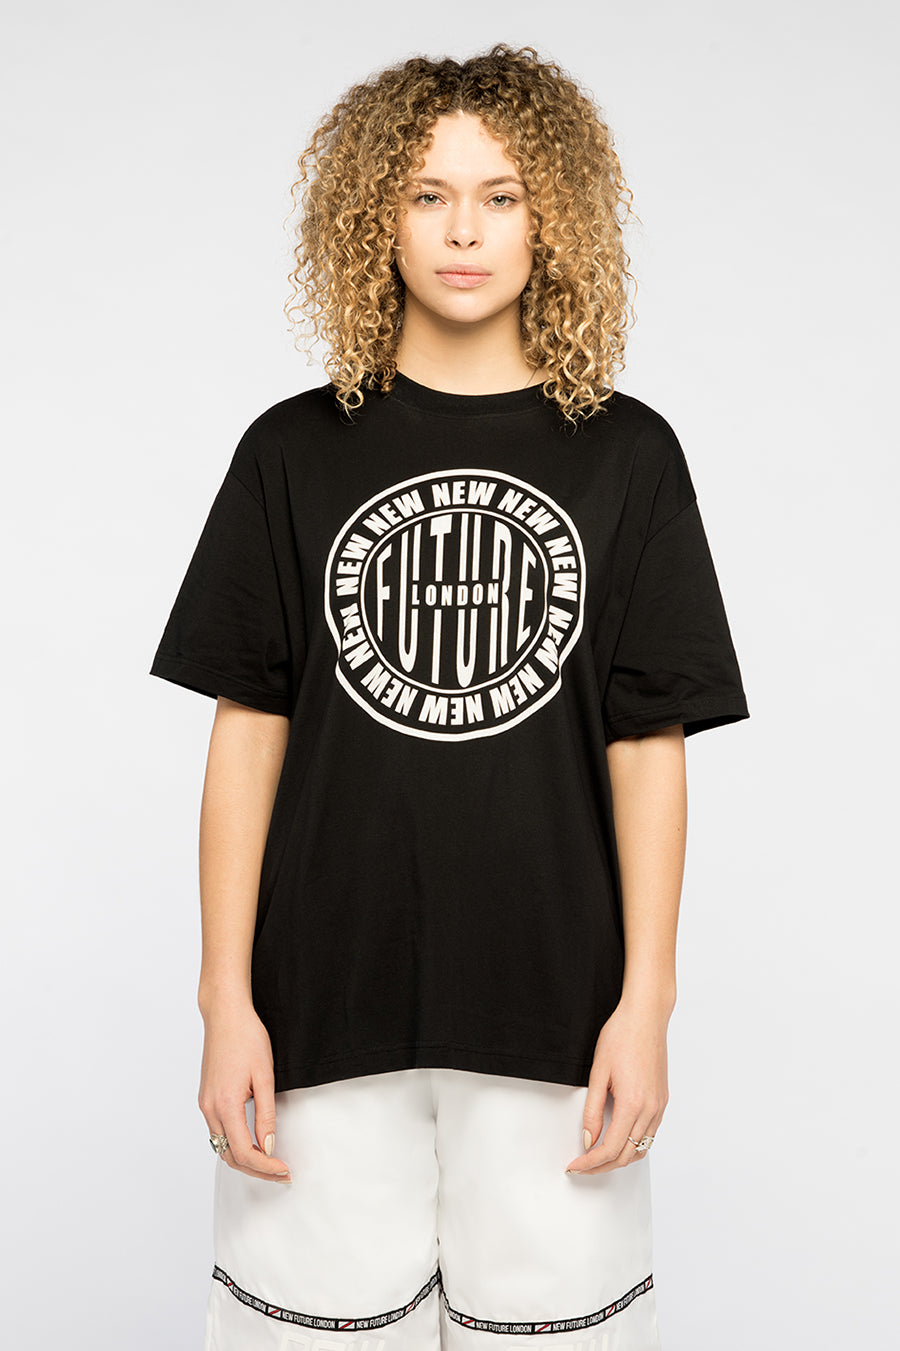 new_future_london_stamp_t_shirt_blk-1.jpg